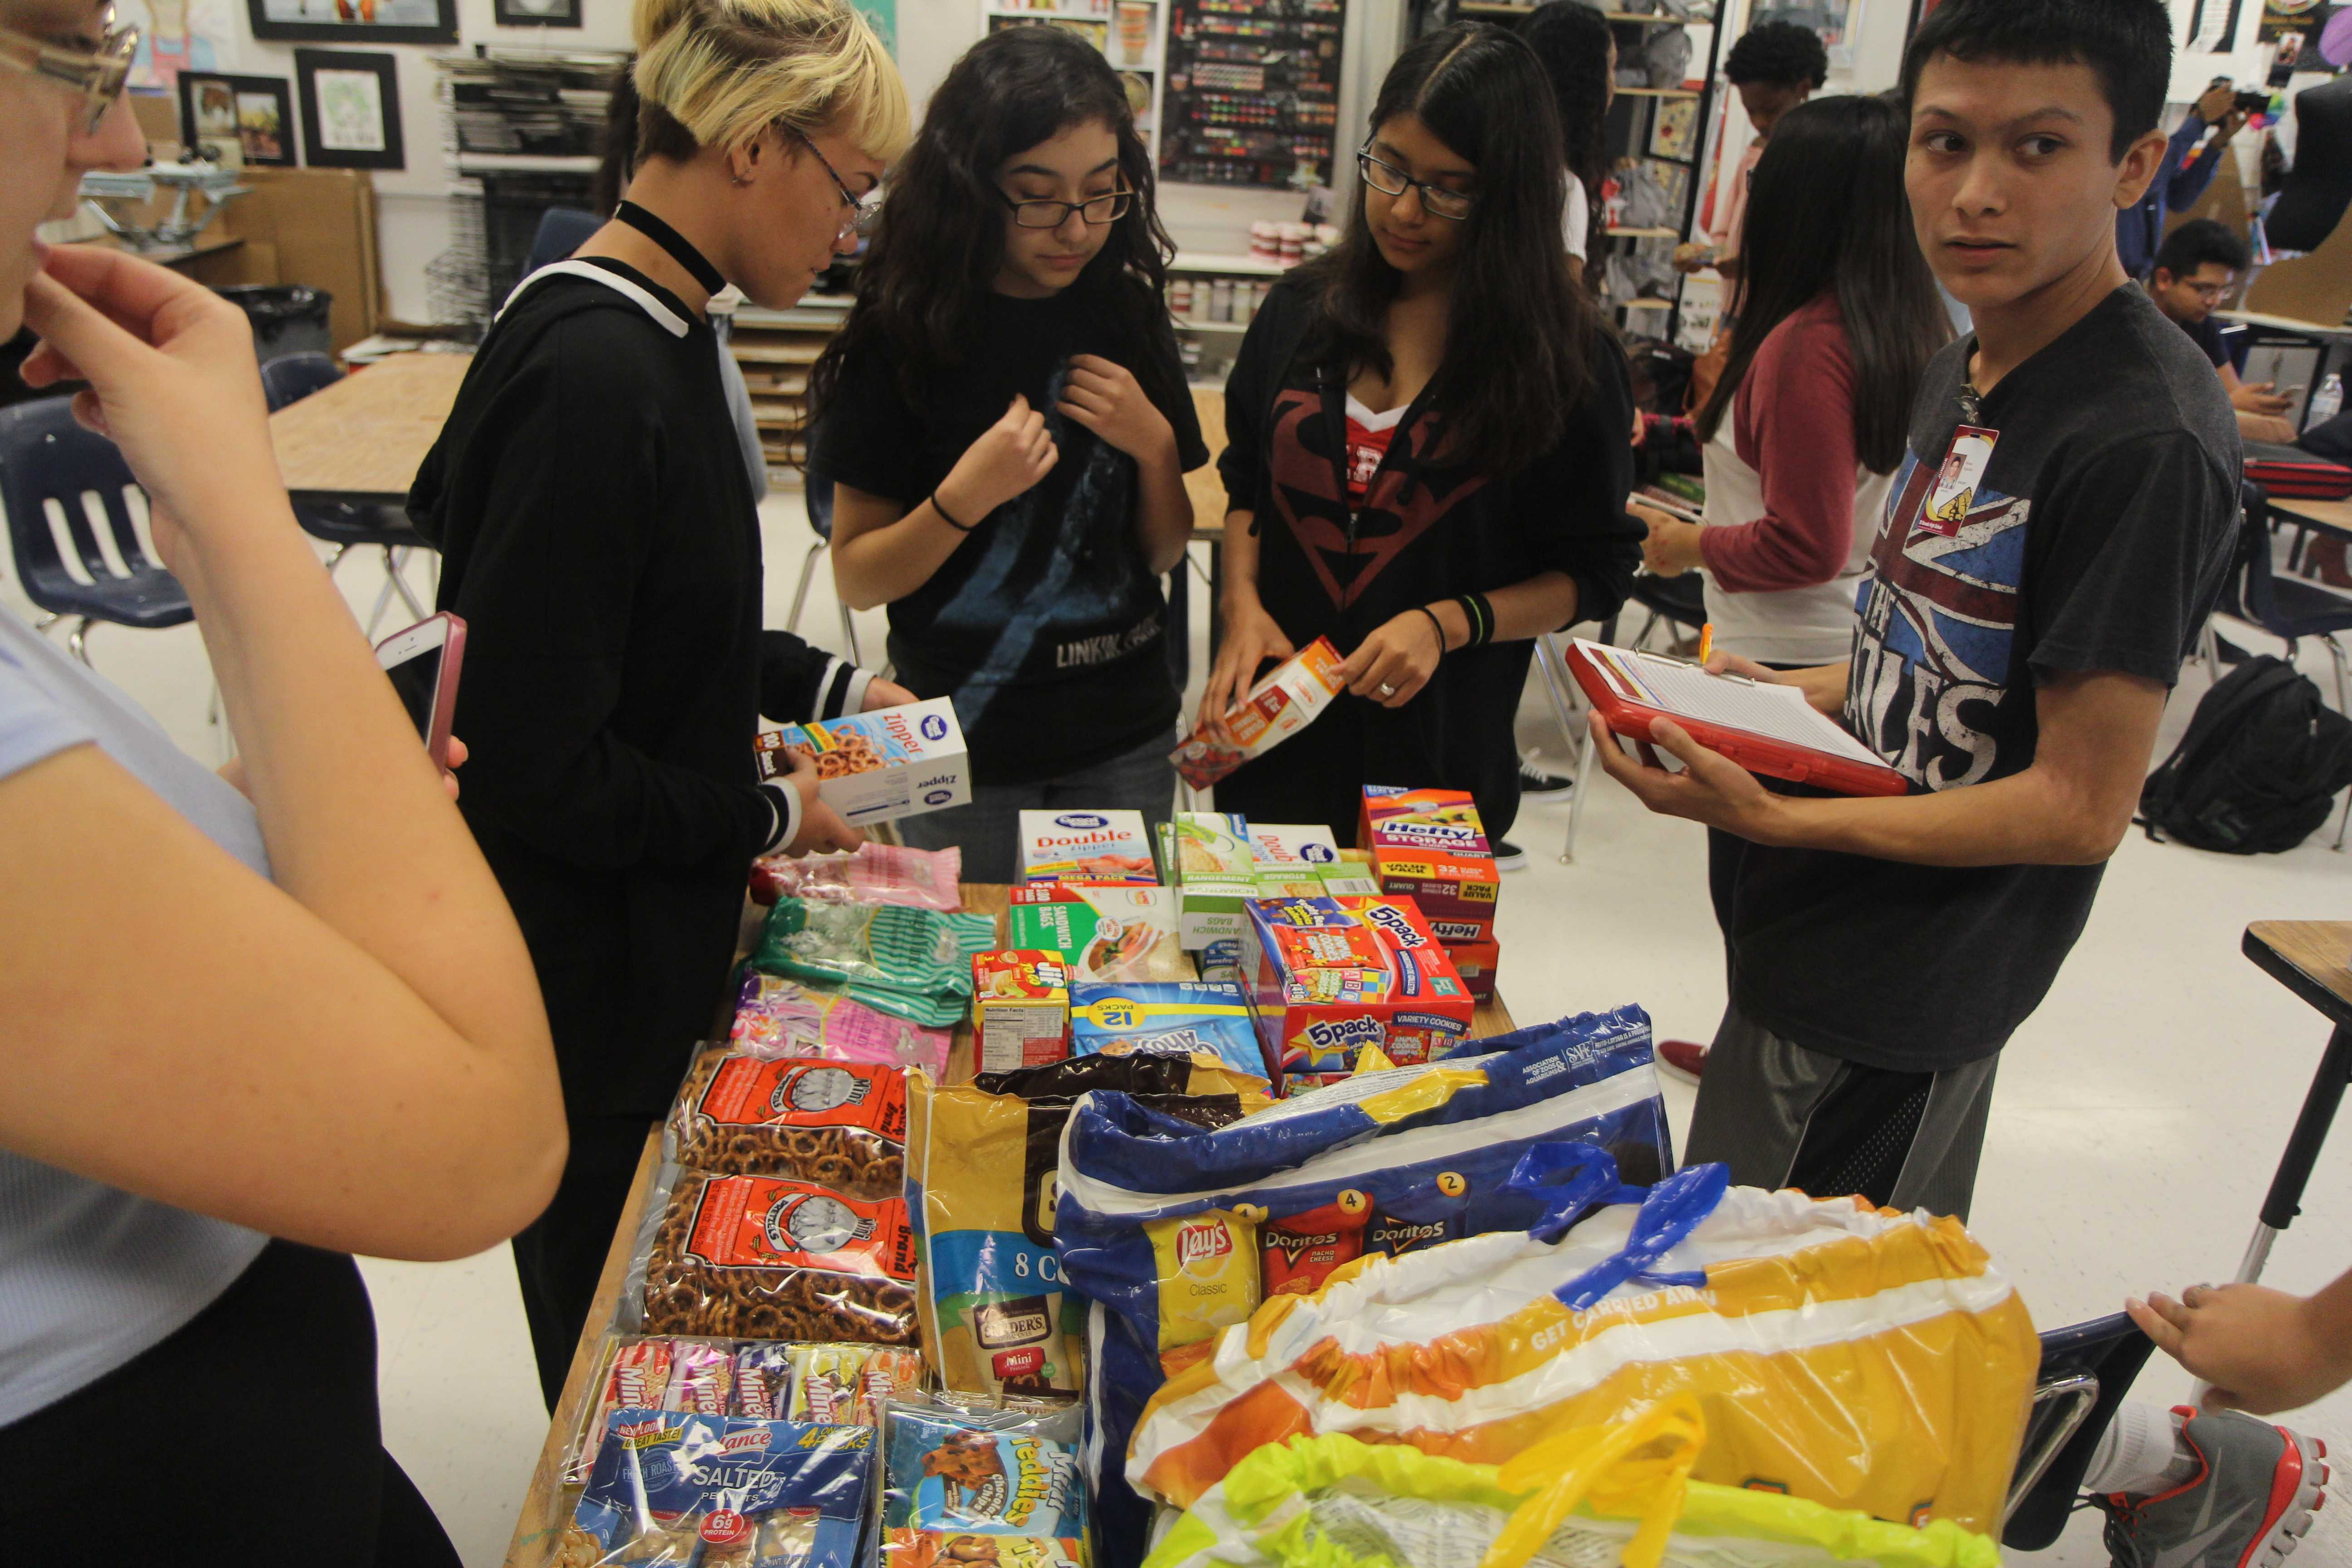 TFCU delivers supplies to 'Your World' project